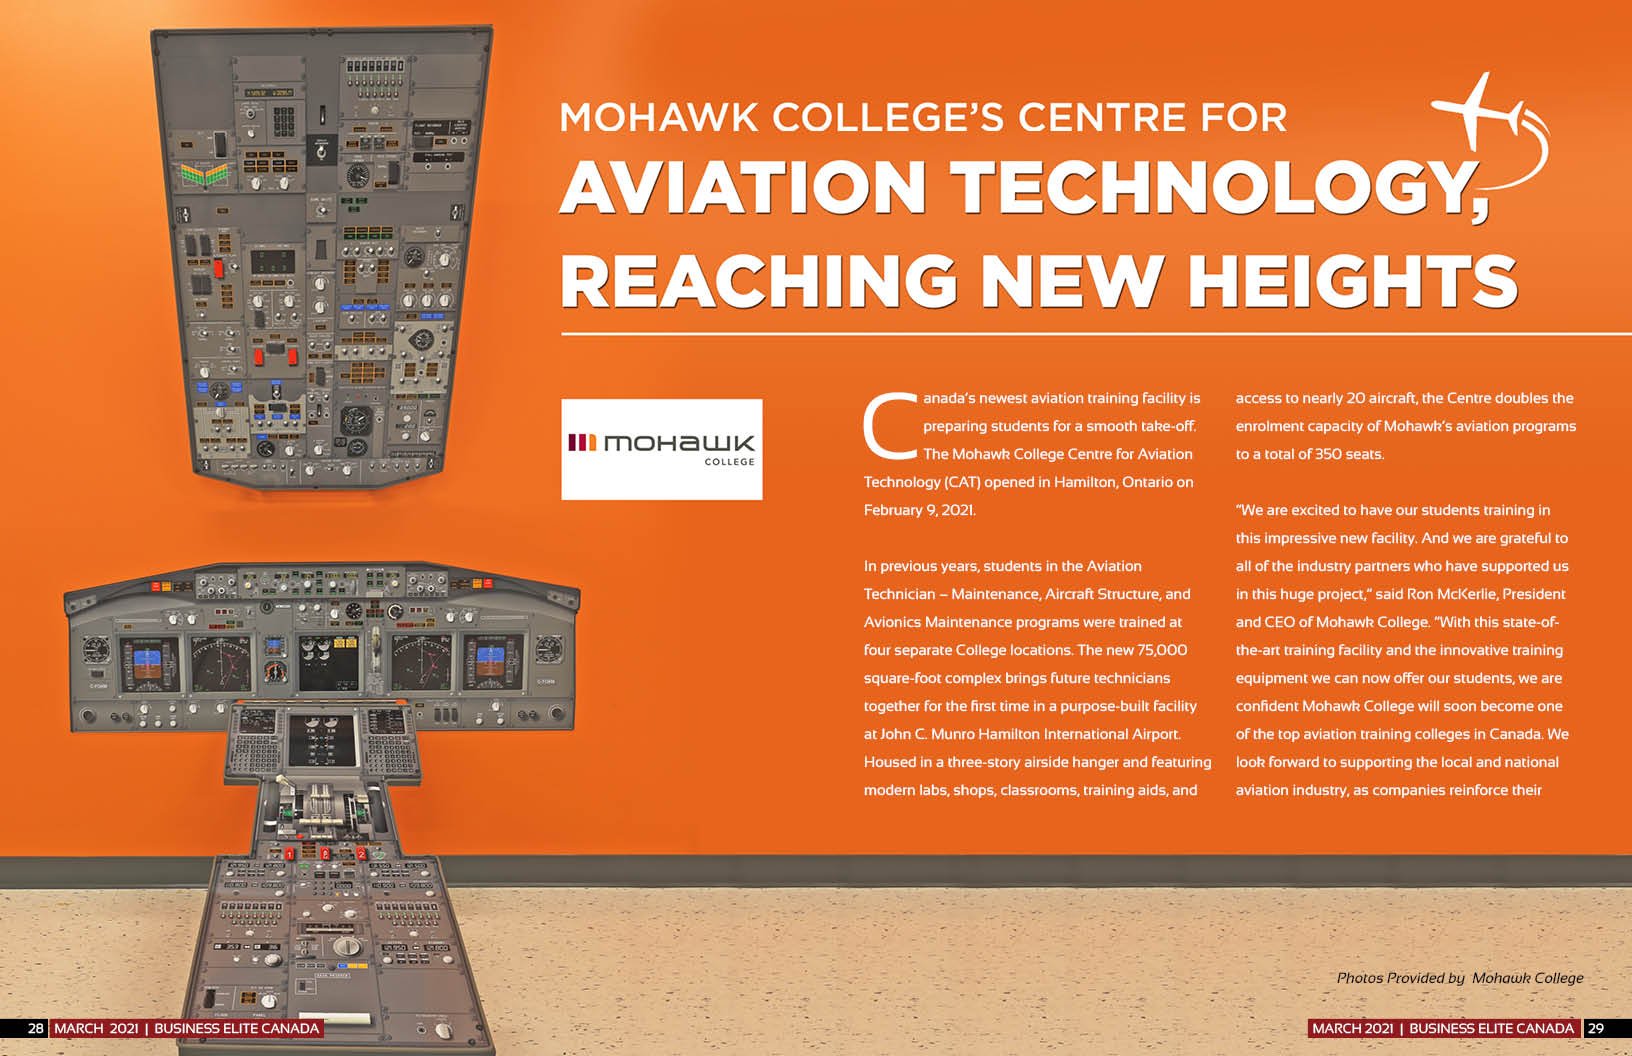 Mohawk College New Centre For Aviation Technology